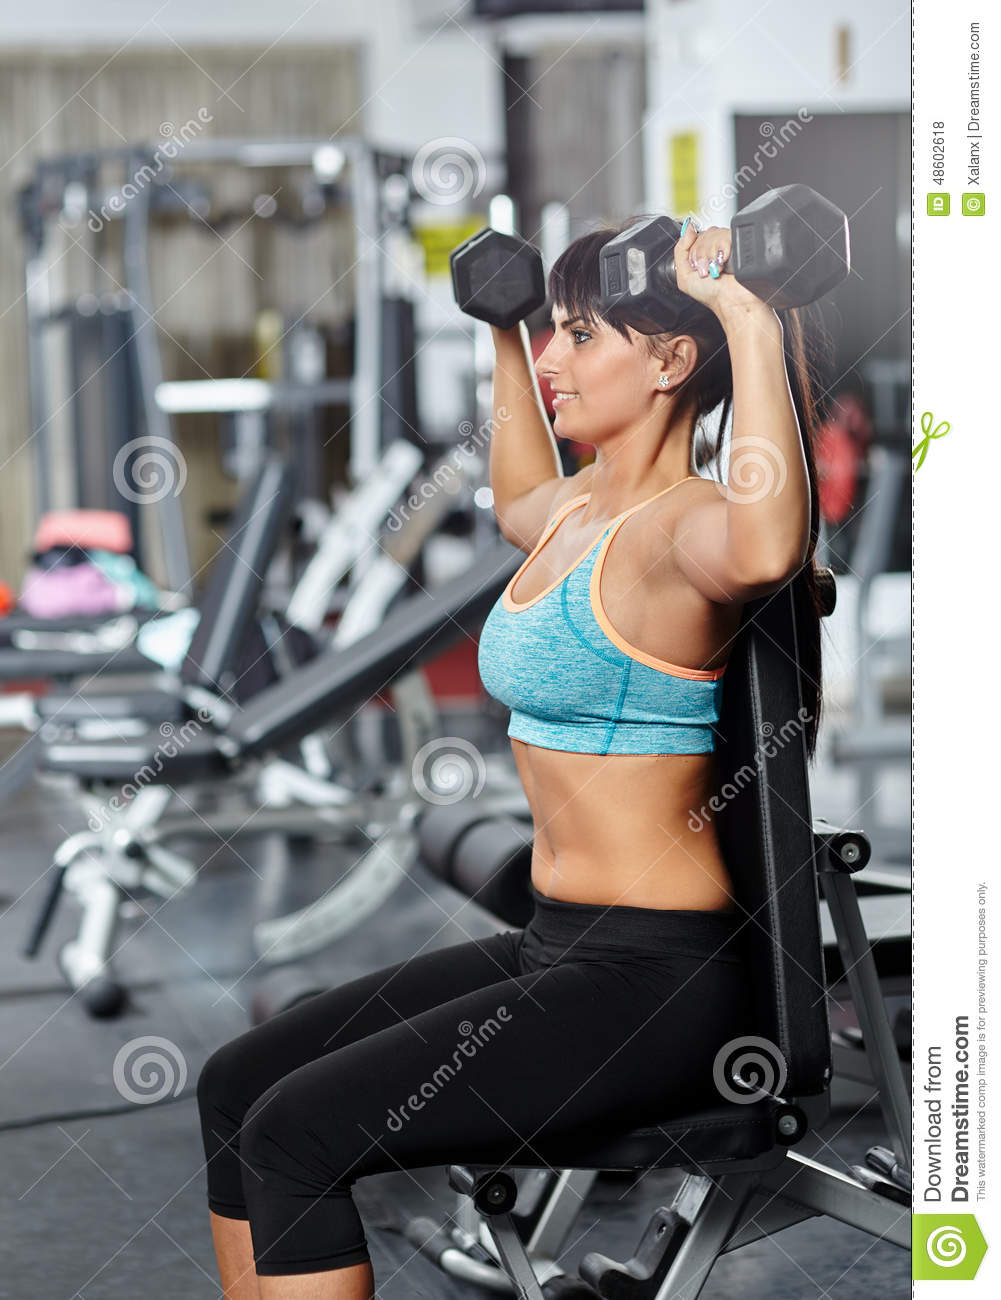 ... woman doing shoulders and triceps workout in a gym, with dumbbells